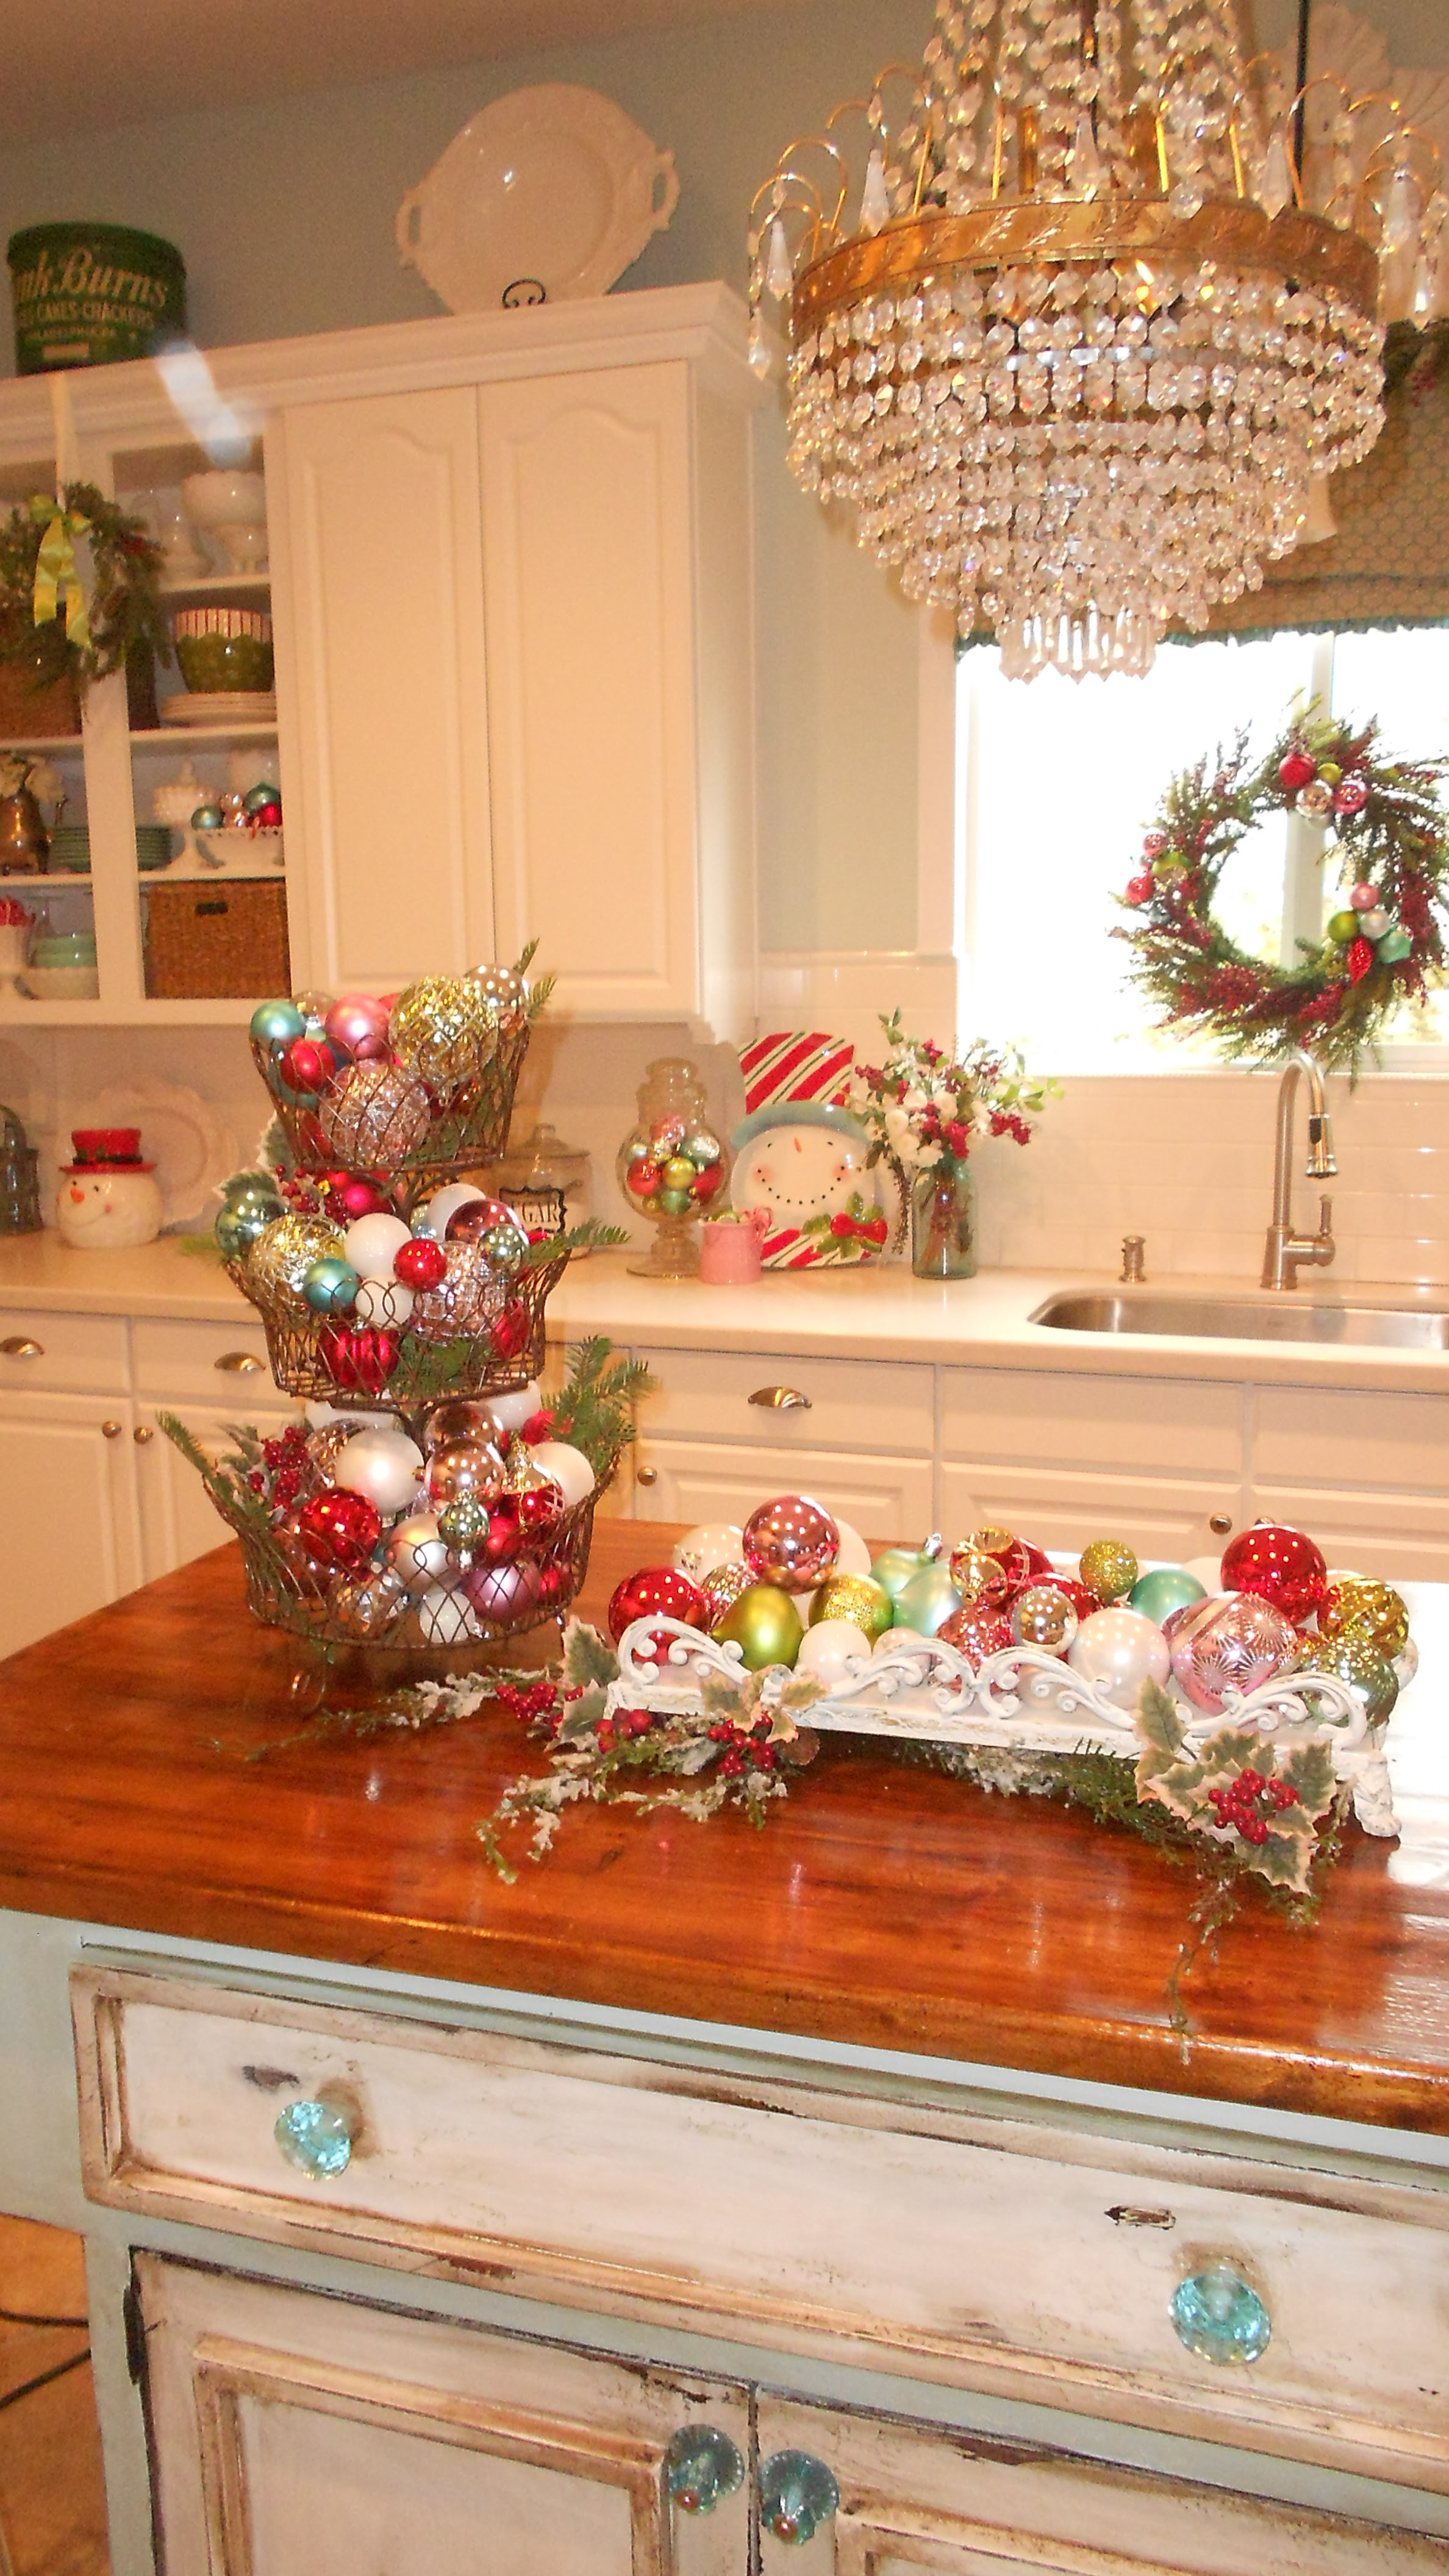 Top 40 Christmas Decorations Ideas For Kitchen ...